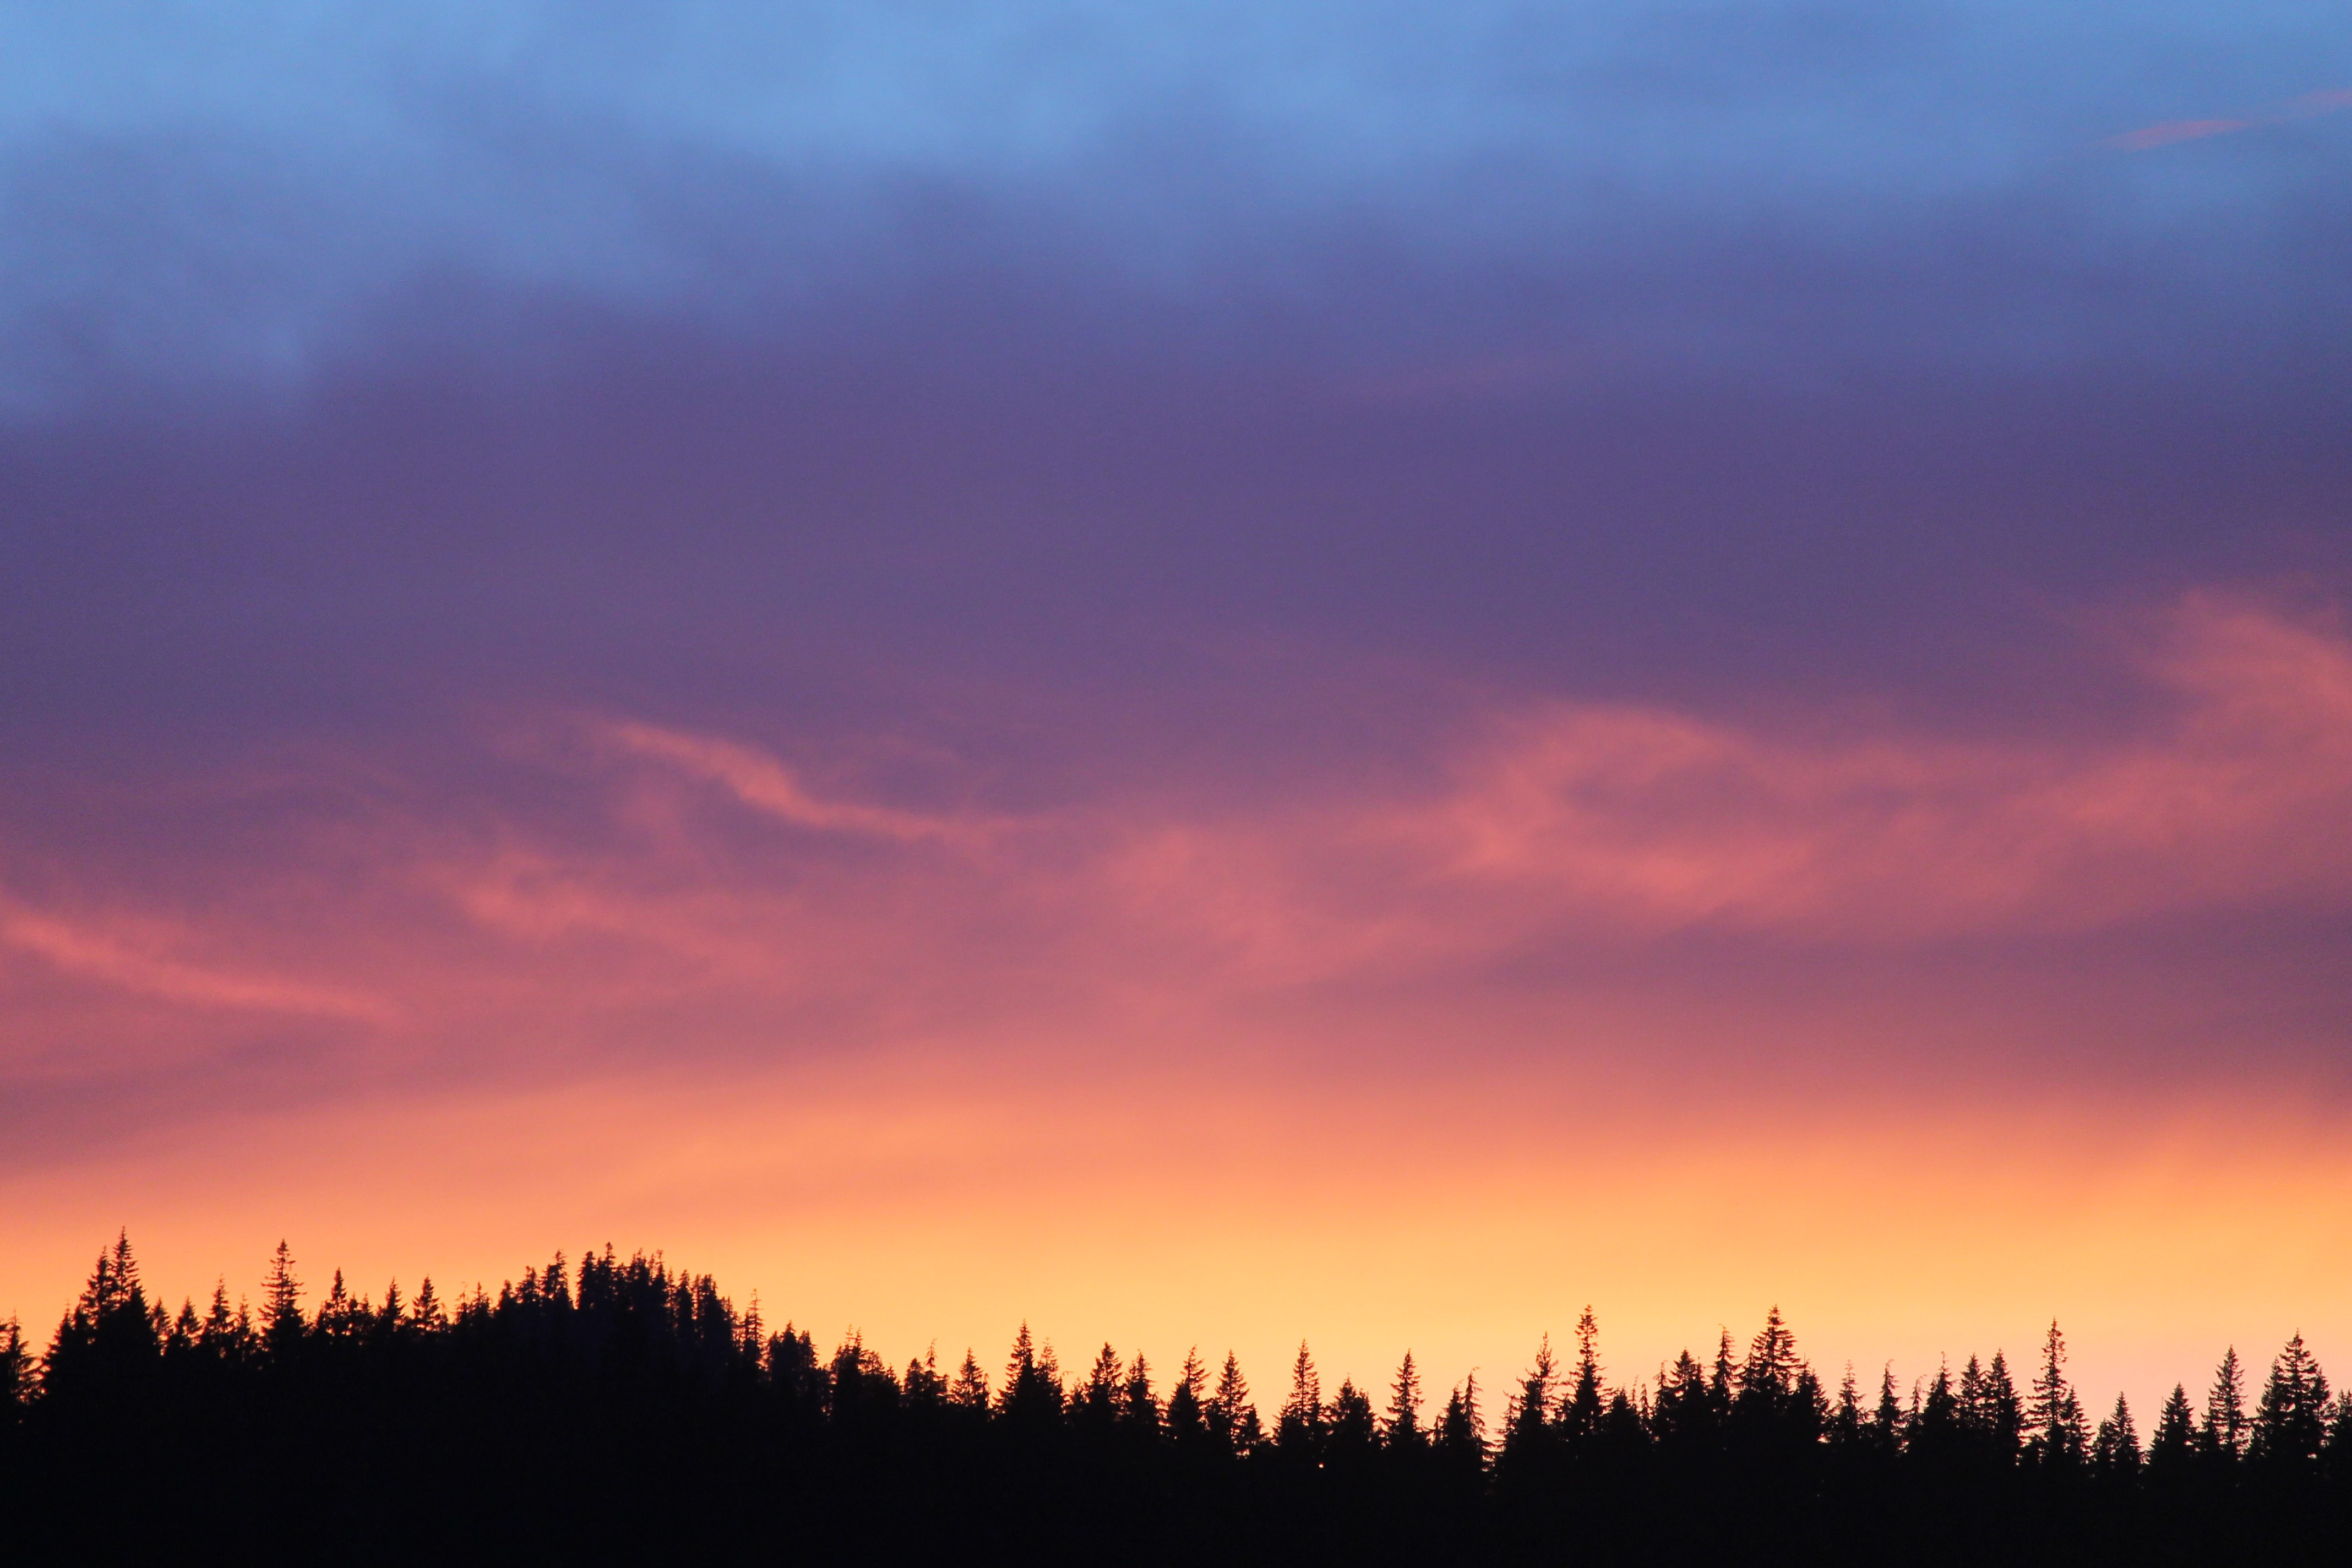 silhouette of trees under orange and blue sky during sunset